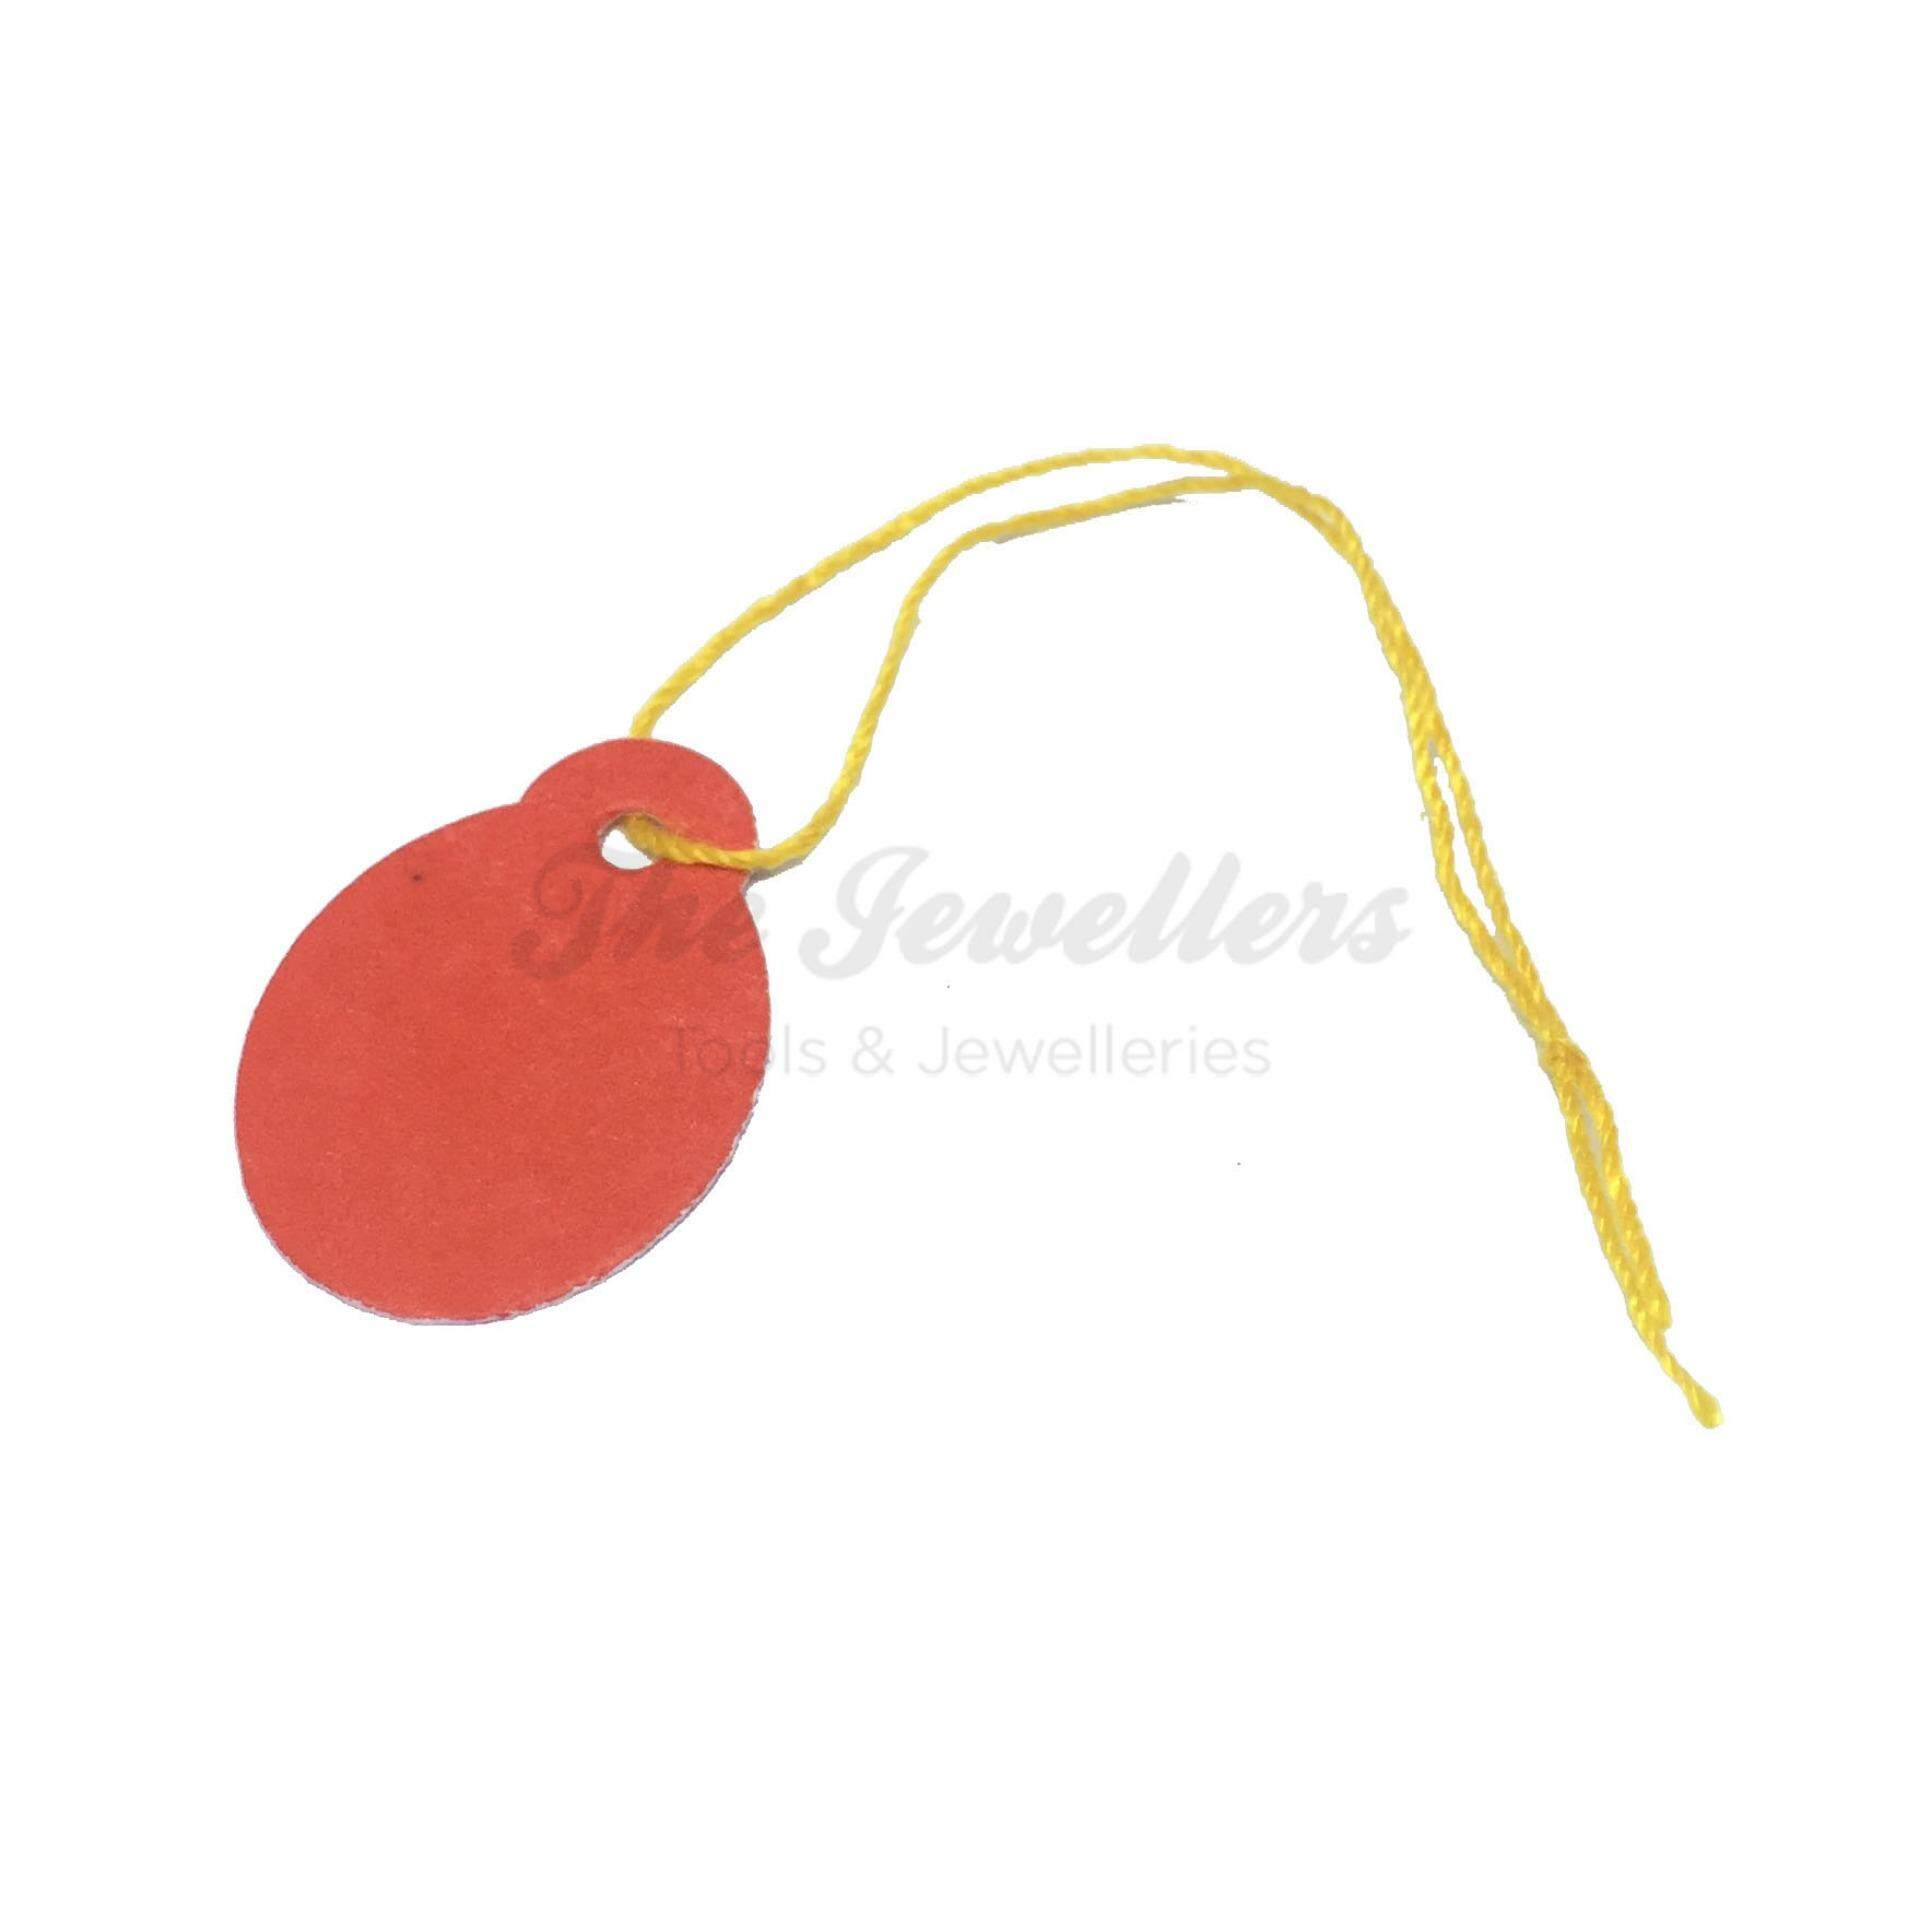 450+-pcs Oval Shape Red Colour Jewellery Price Tag with Thick Yellow Thread